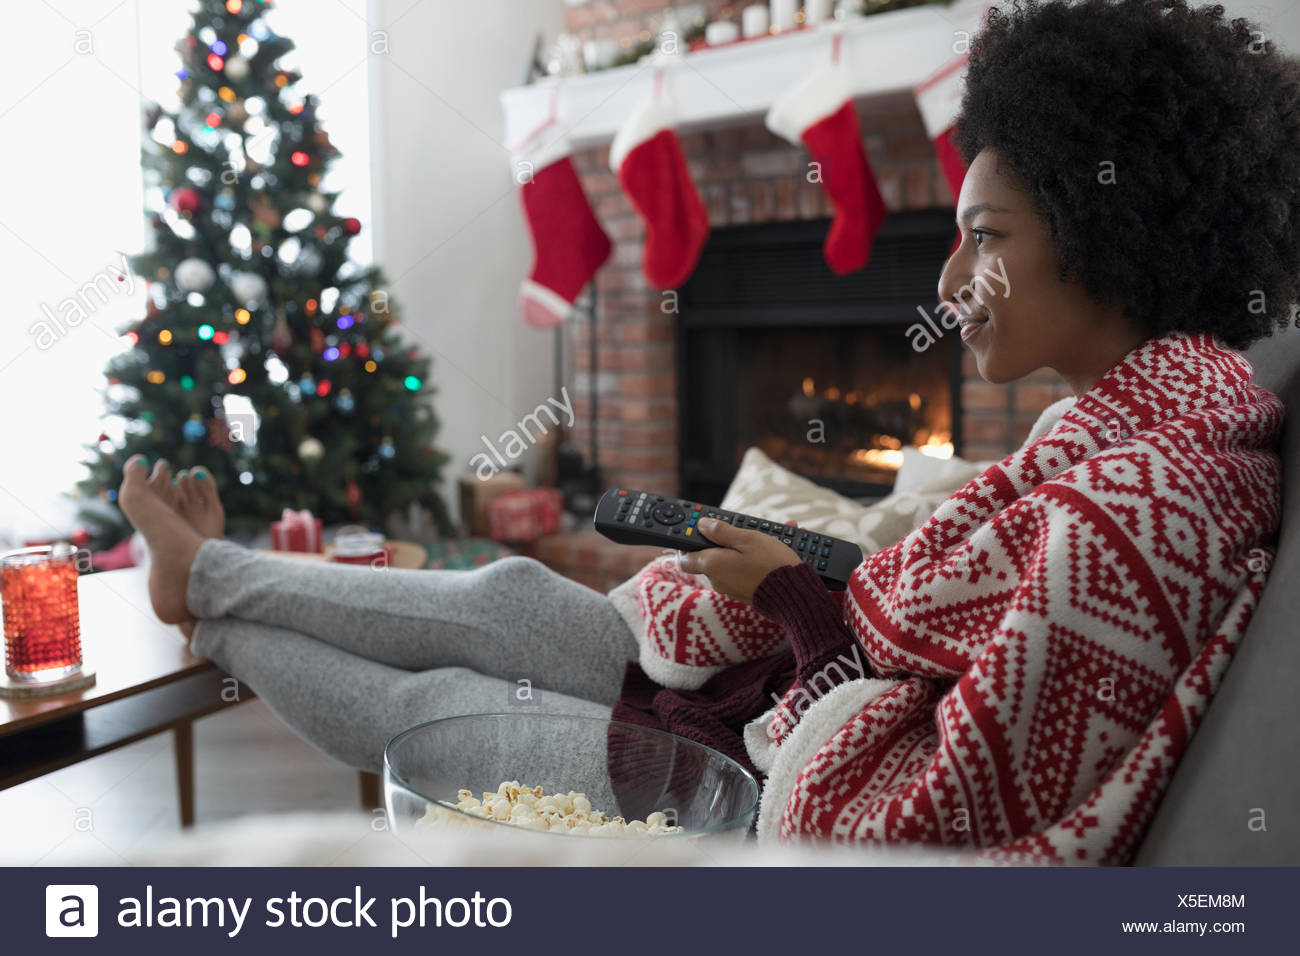 Young woman in pajamas watching TV in Christmas living room - Stock Image